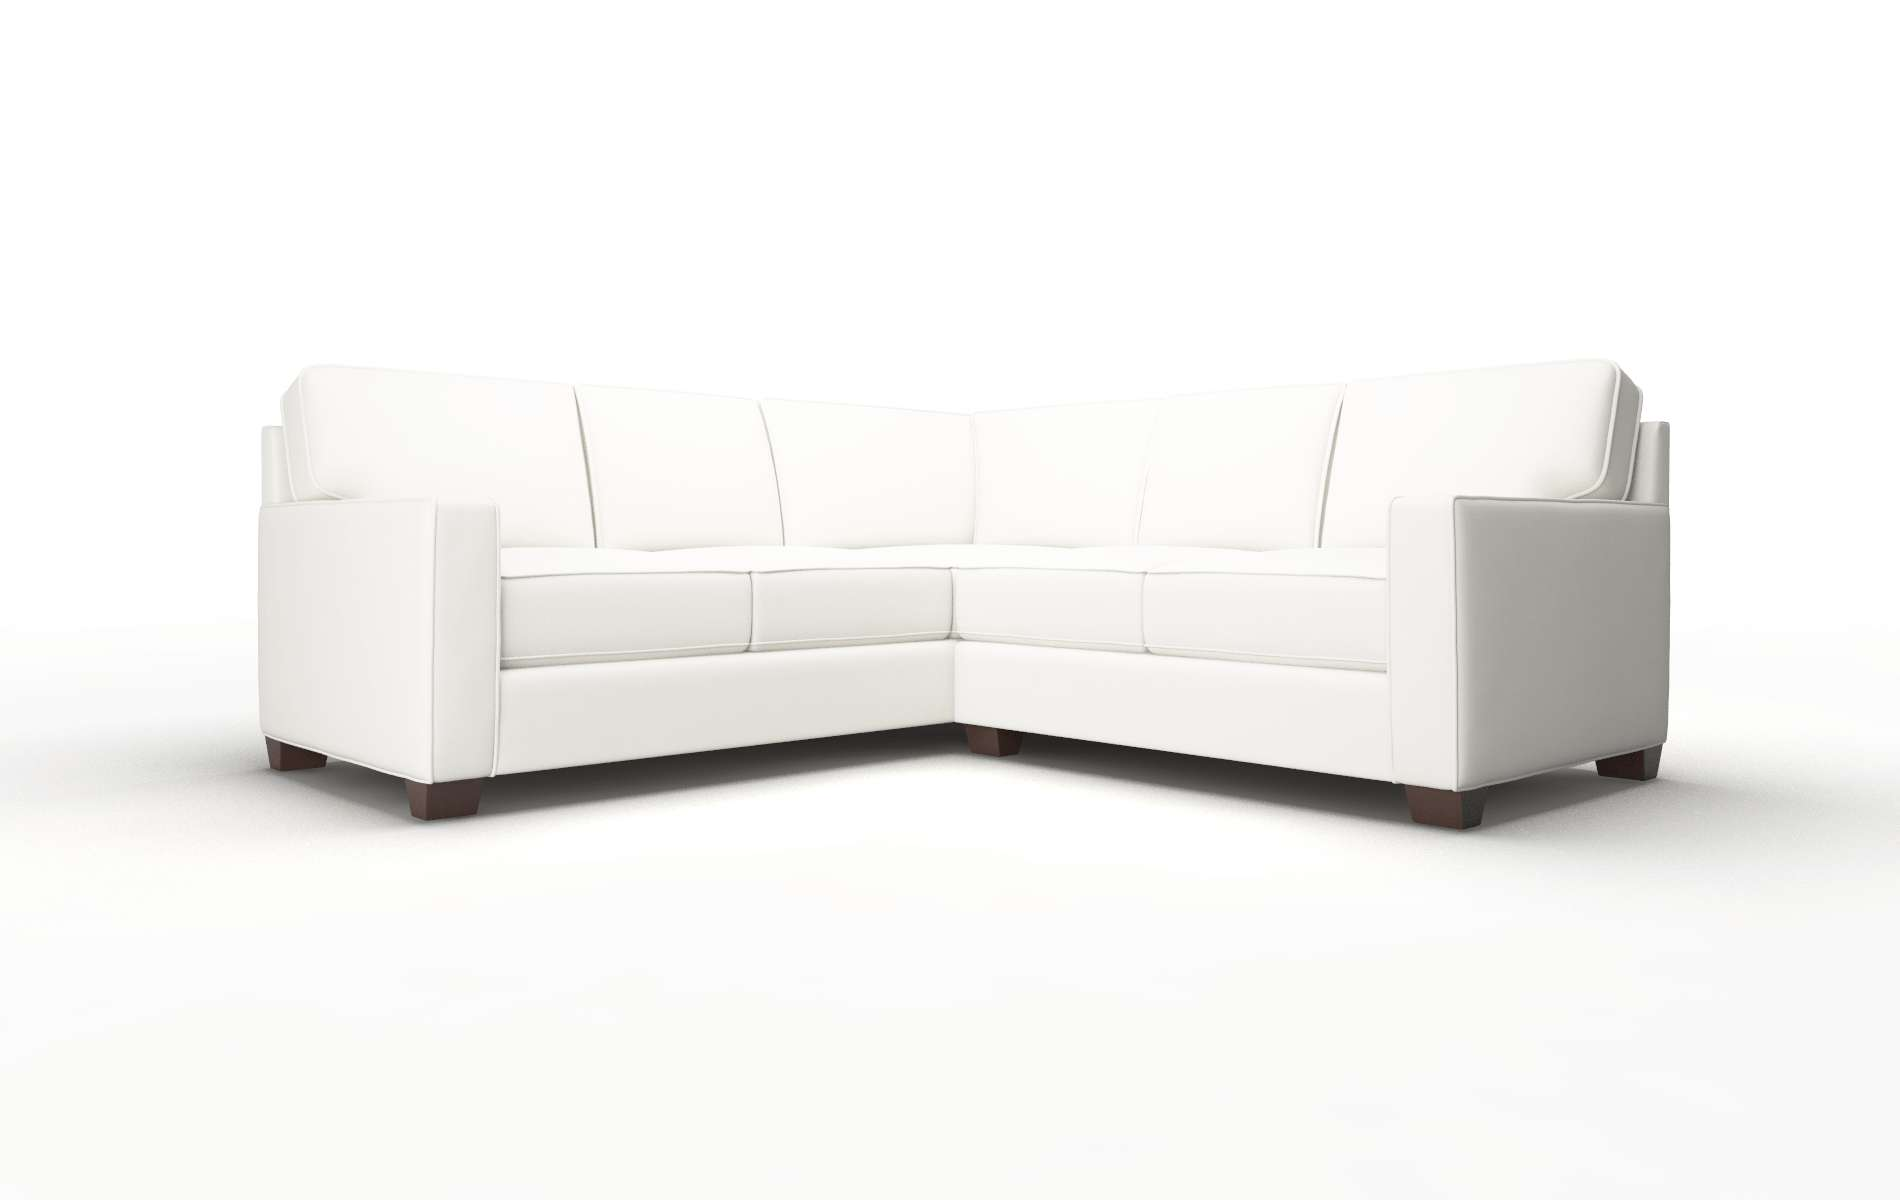 Chicago Keylargo Oatmeal Sectional espresso legs 1